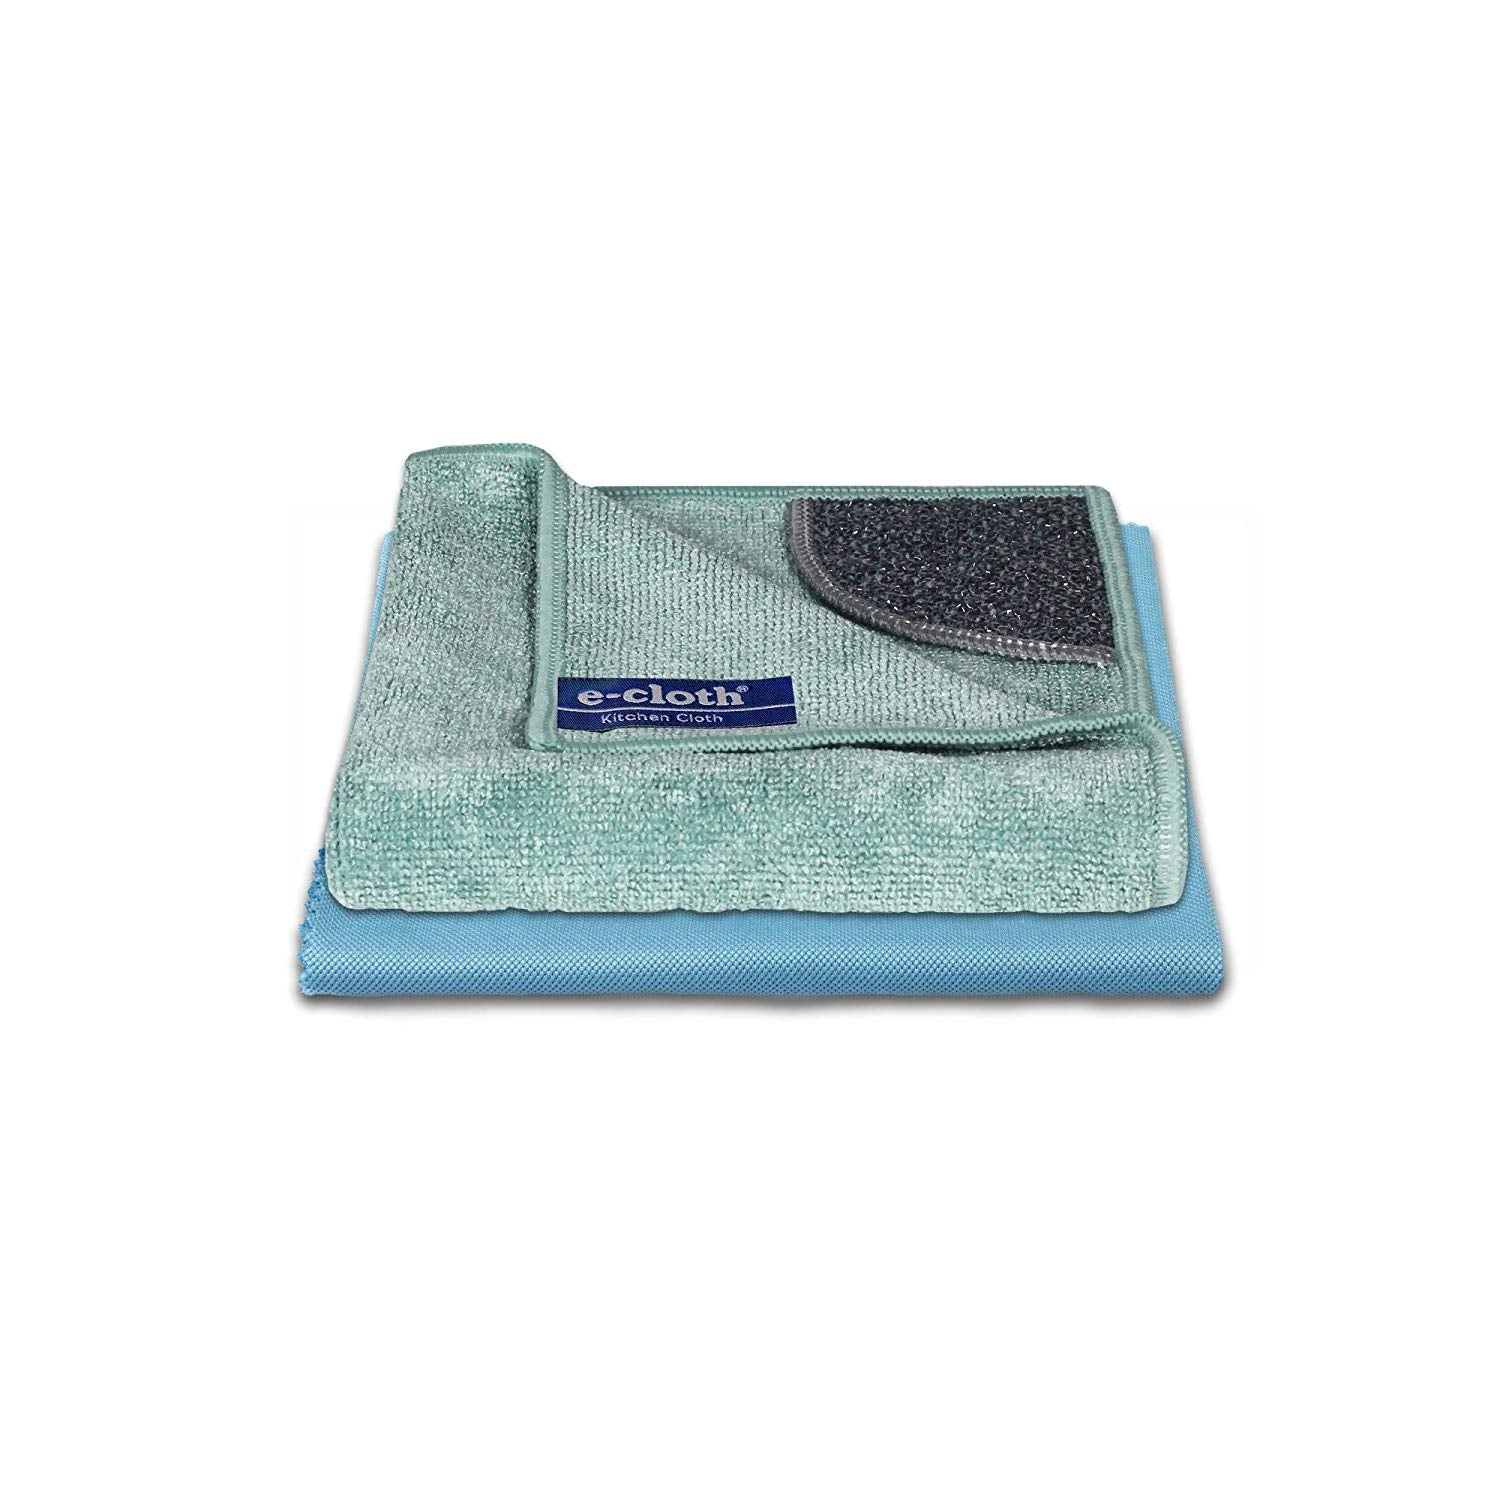 E-Cloth Kitchen Cleaning 2 Cloths $24.99